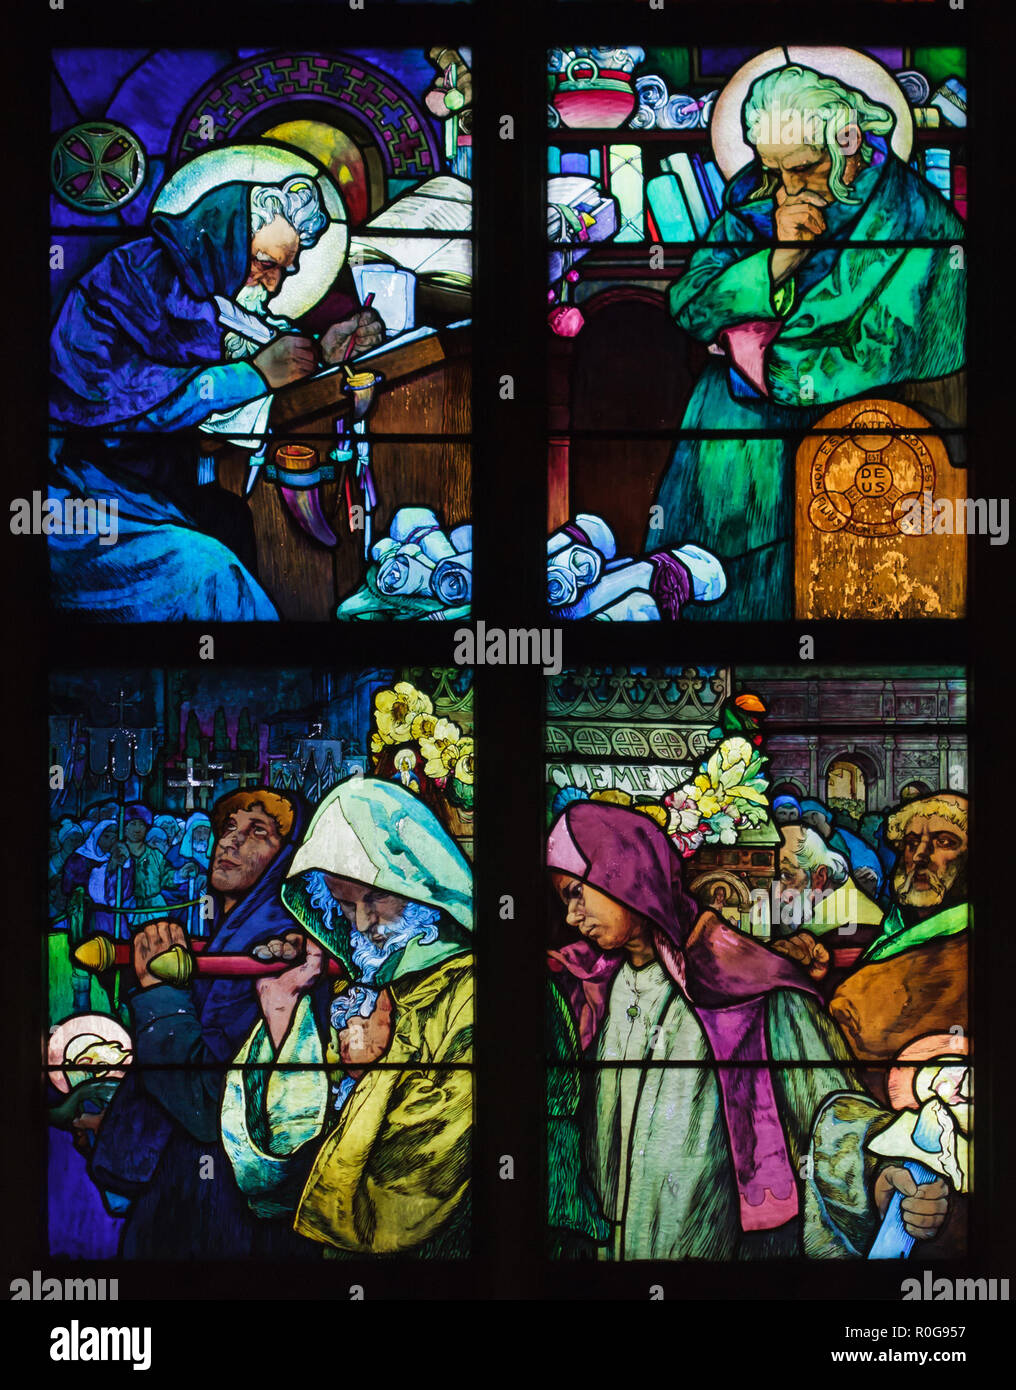 Detail of the stained-glass window designed by Czech Art Nouveau artist Alfons Mucha in Saint Vitus' Cathedral in the Prague Castle in Prague, Czech Republic. The scenes from the life of Saints Cyril and Methodius are depicted in the stained-glass window from top to bottom: Saints Cyril and Methodius invent Glagolitic alphabet for Slavonic language and translate the Bible to Slavonic language; Saints Cyril and Methodius transfer the relics of Saint Pope Clement I from Crimea to Rome. - Stock Image